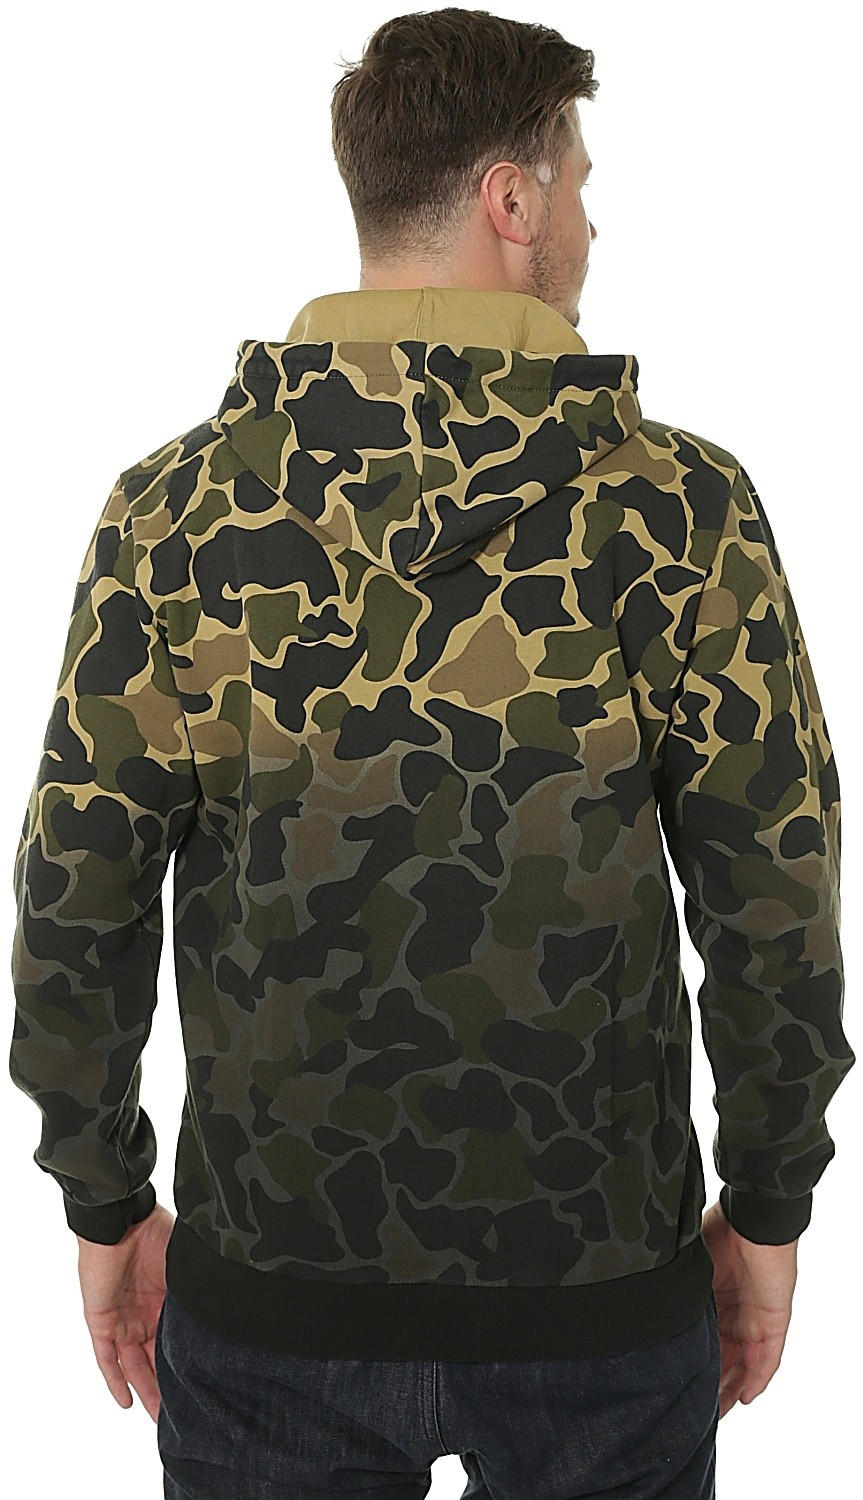 Sweatshirt adidas Originals Camo Hoodie Multicolor